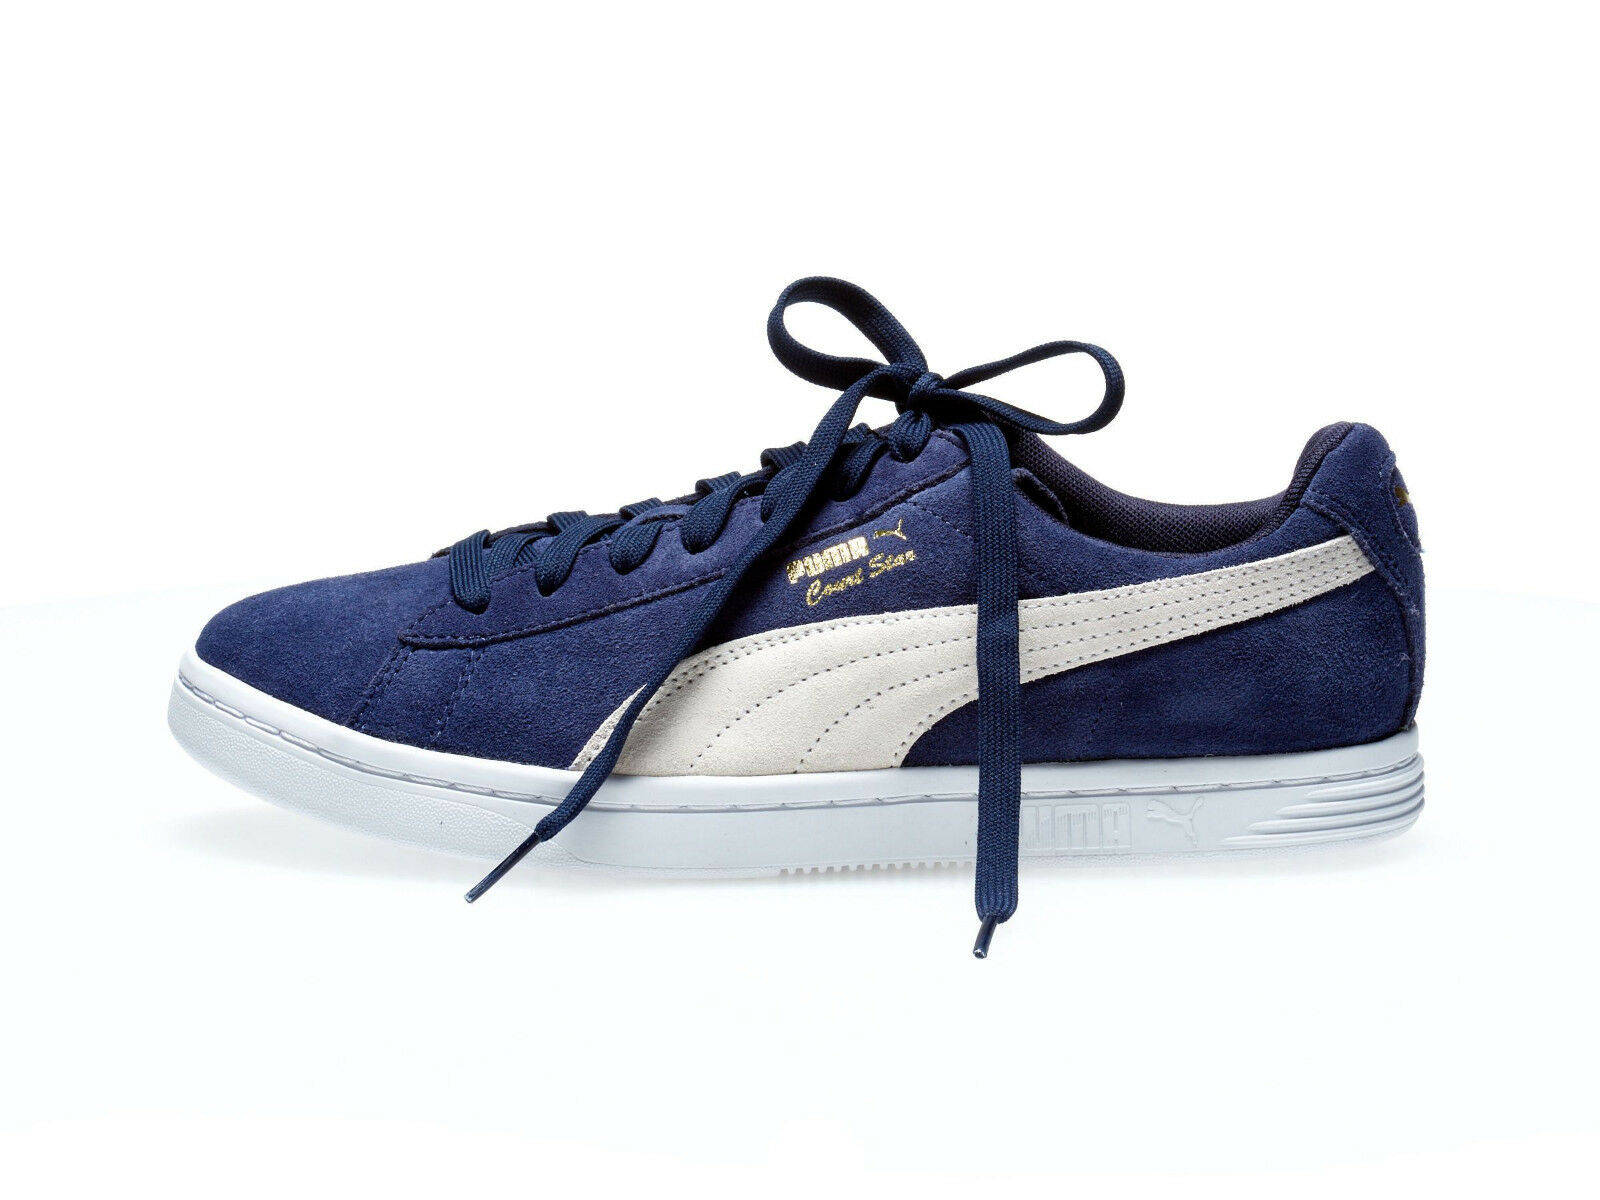 pretty nice 0ad69 4e021 Puma Escarpins Star Sd FS 44.5 Baskets Hommes Daim Match Match Daim Vulc  Smash Neuf bb9085